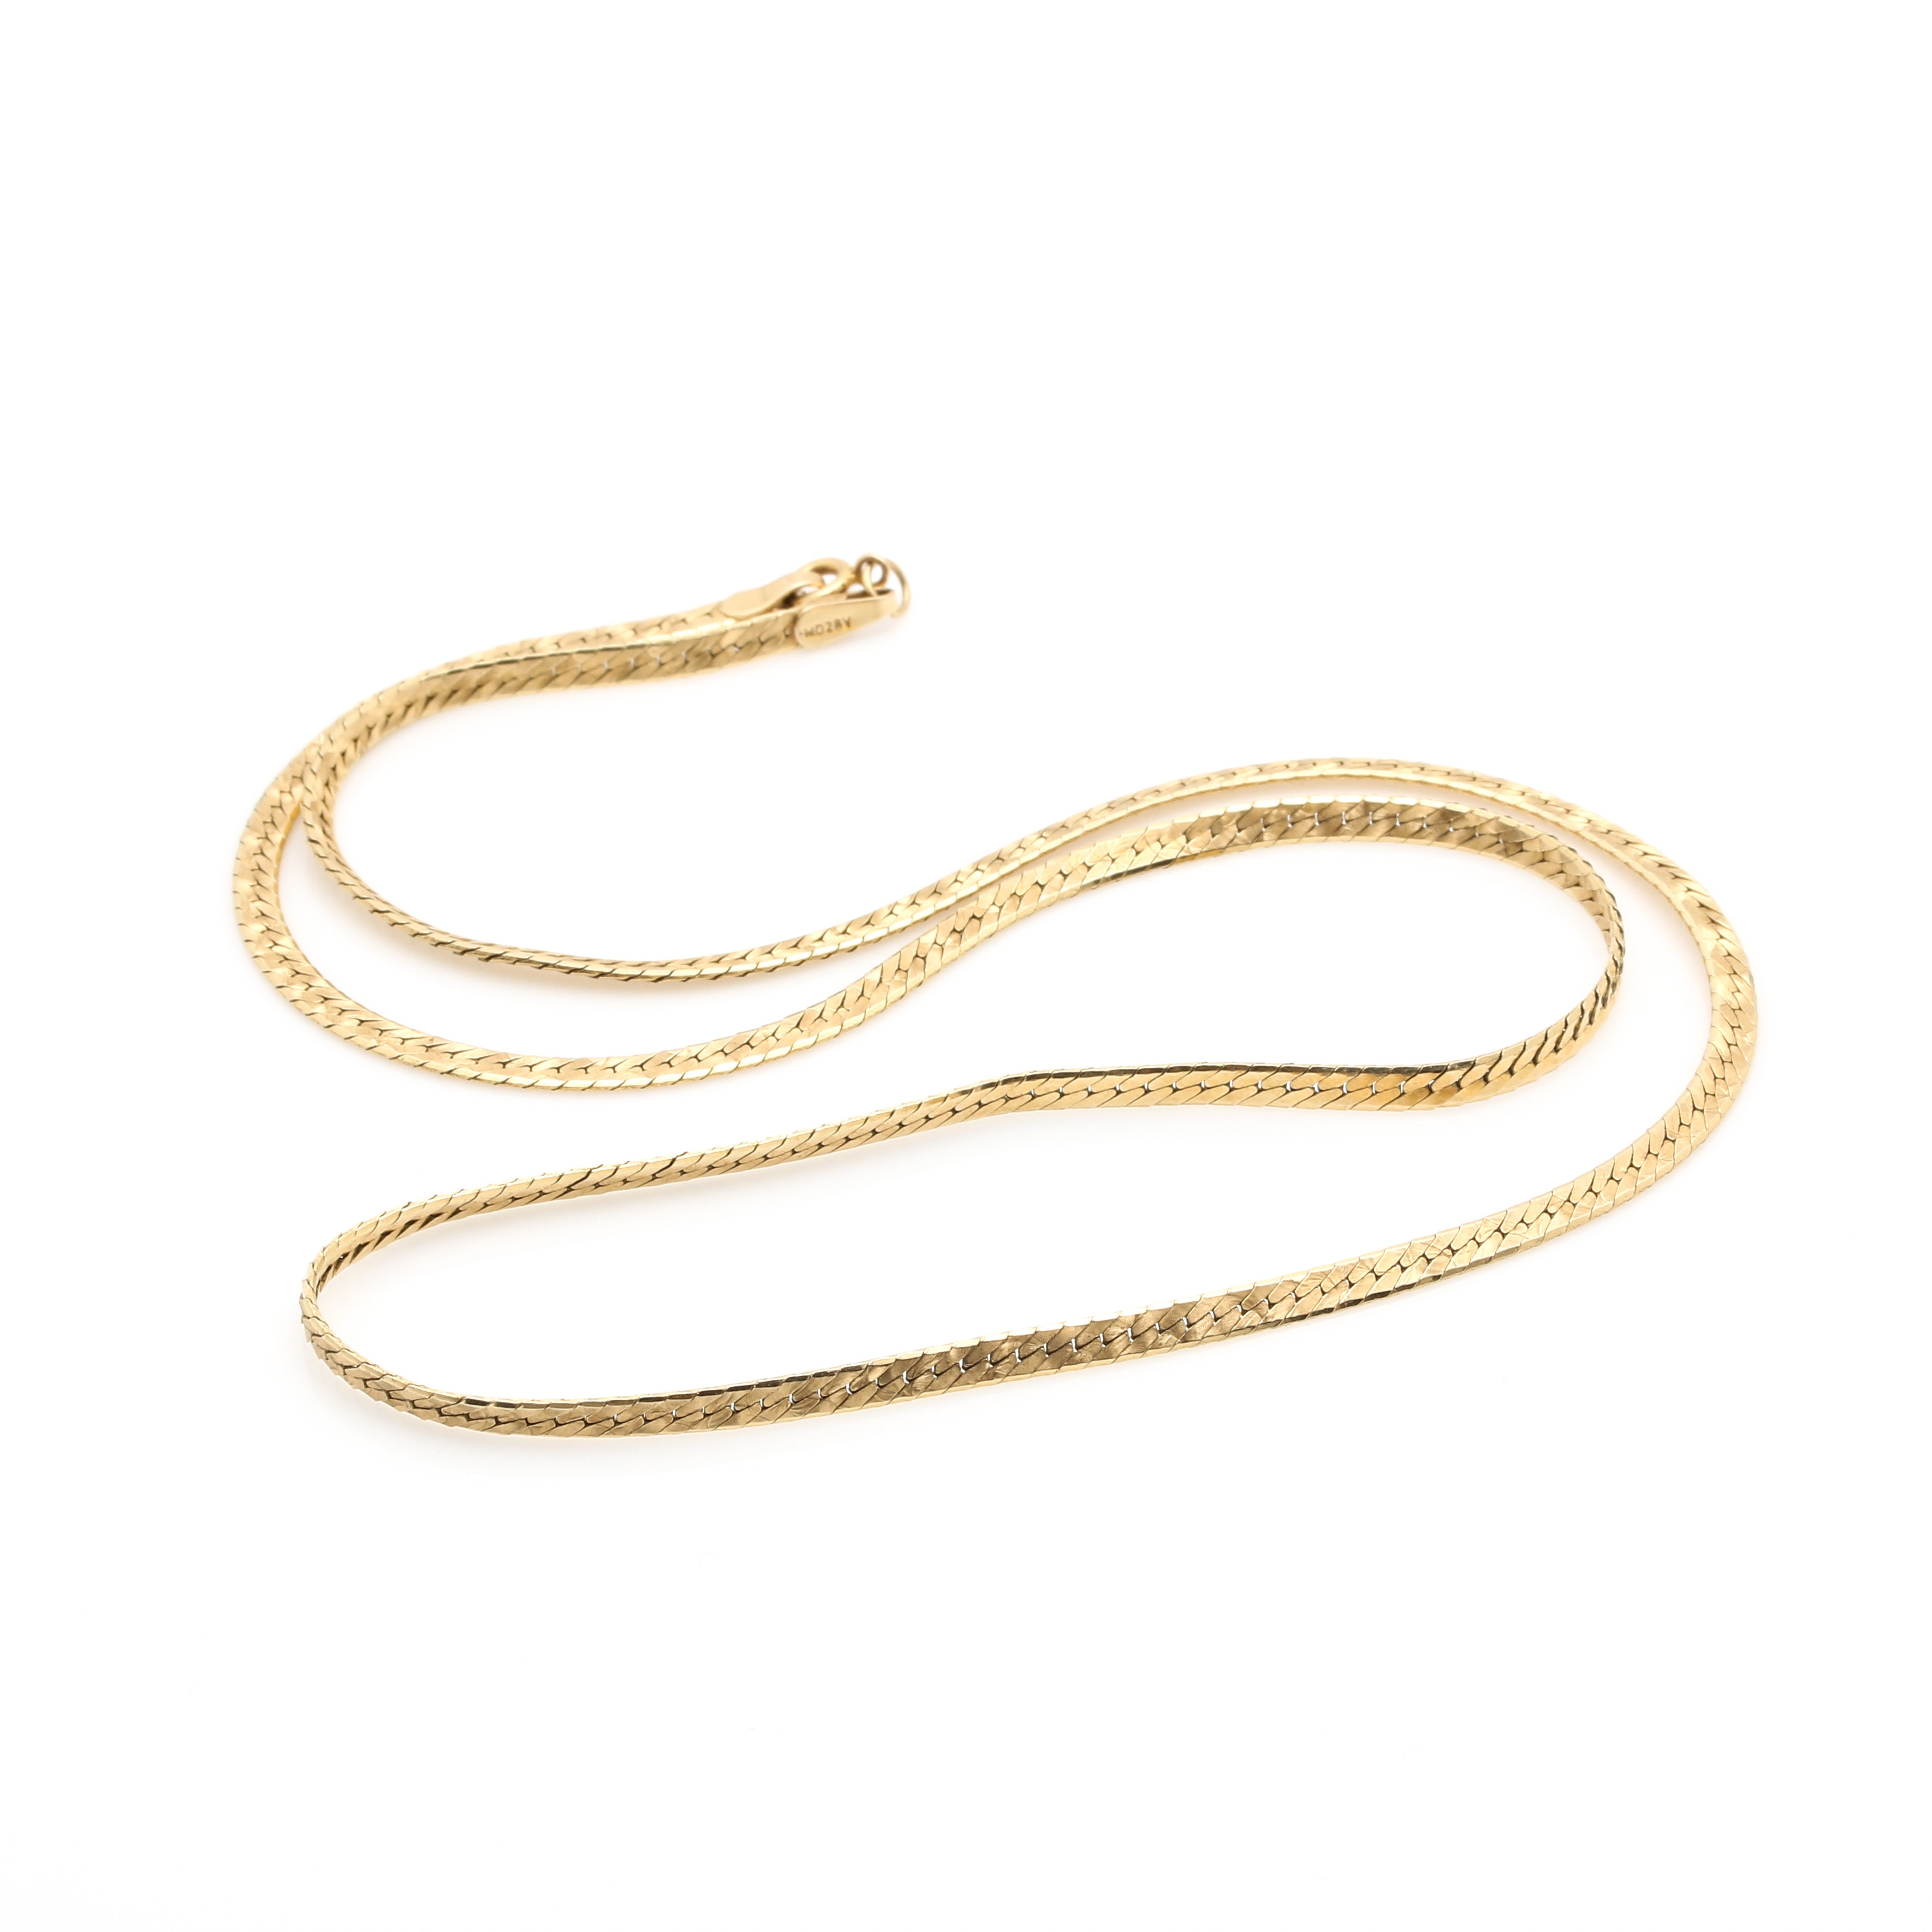 14K Yellow Gold Reversible Herringbone Chain Necklace